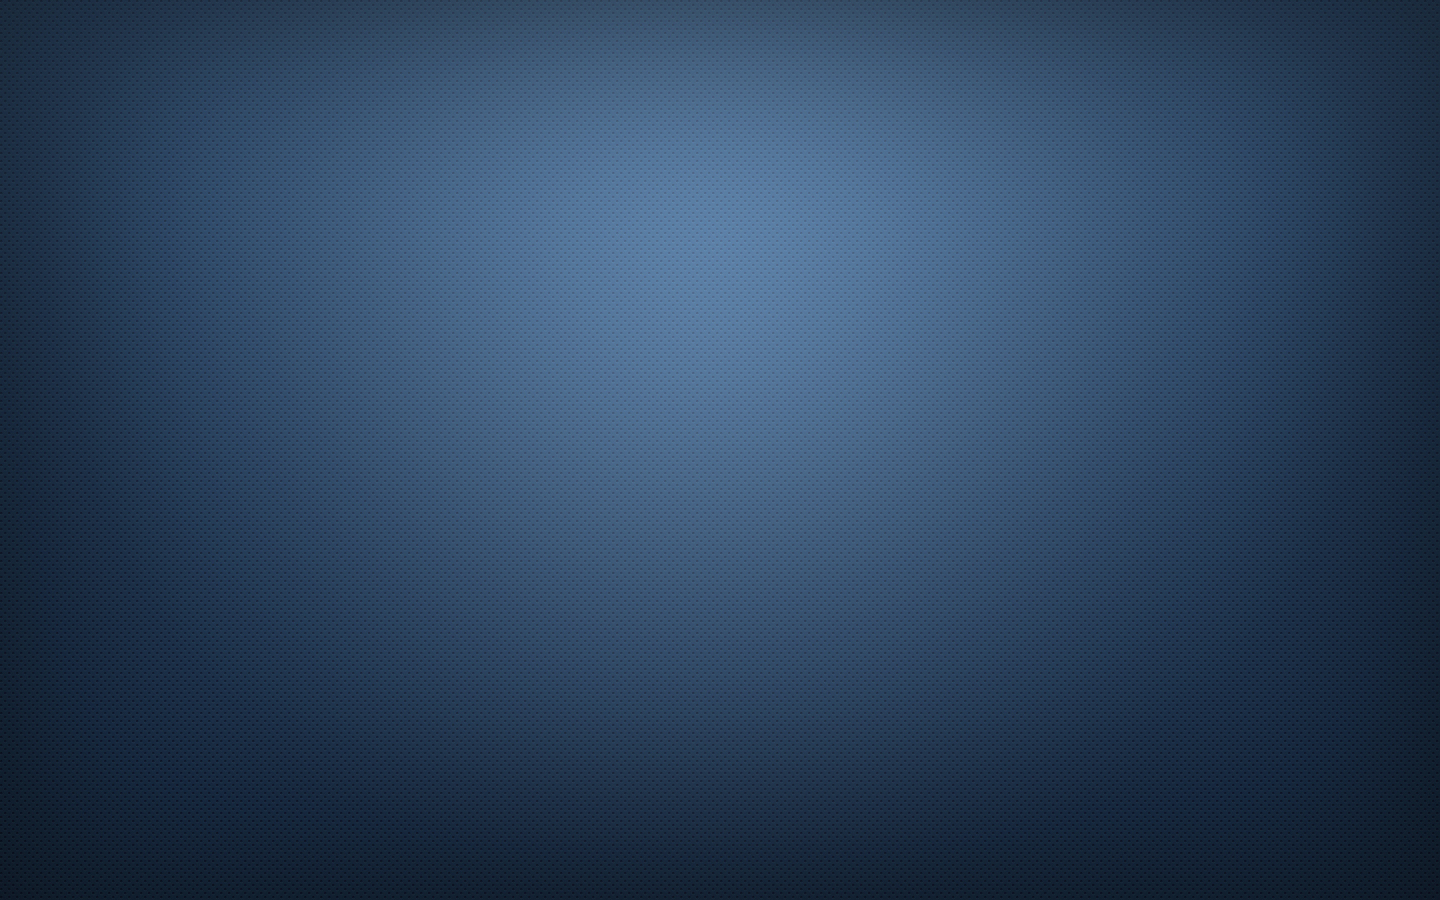 blue minimalistic Textures backgrounds HD Wallpaper